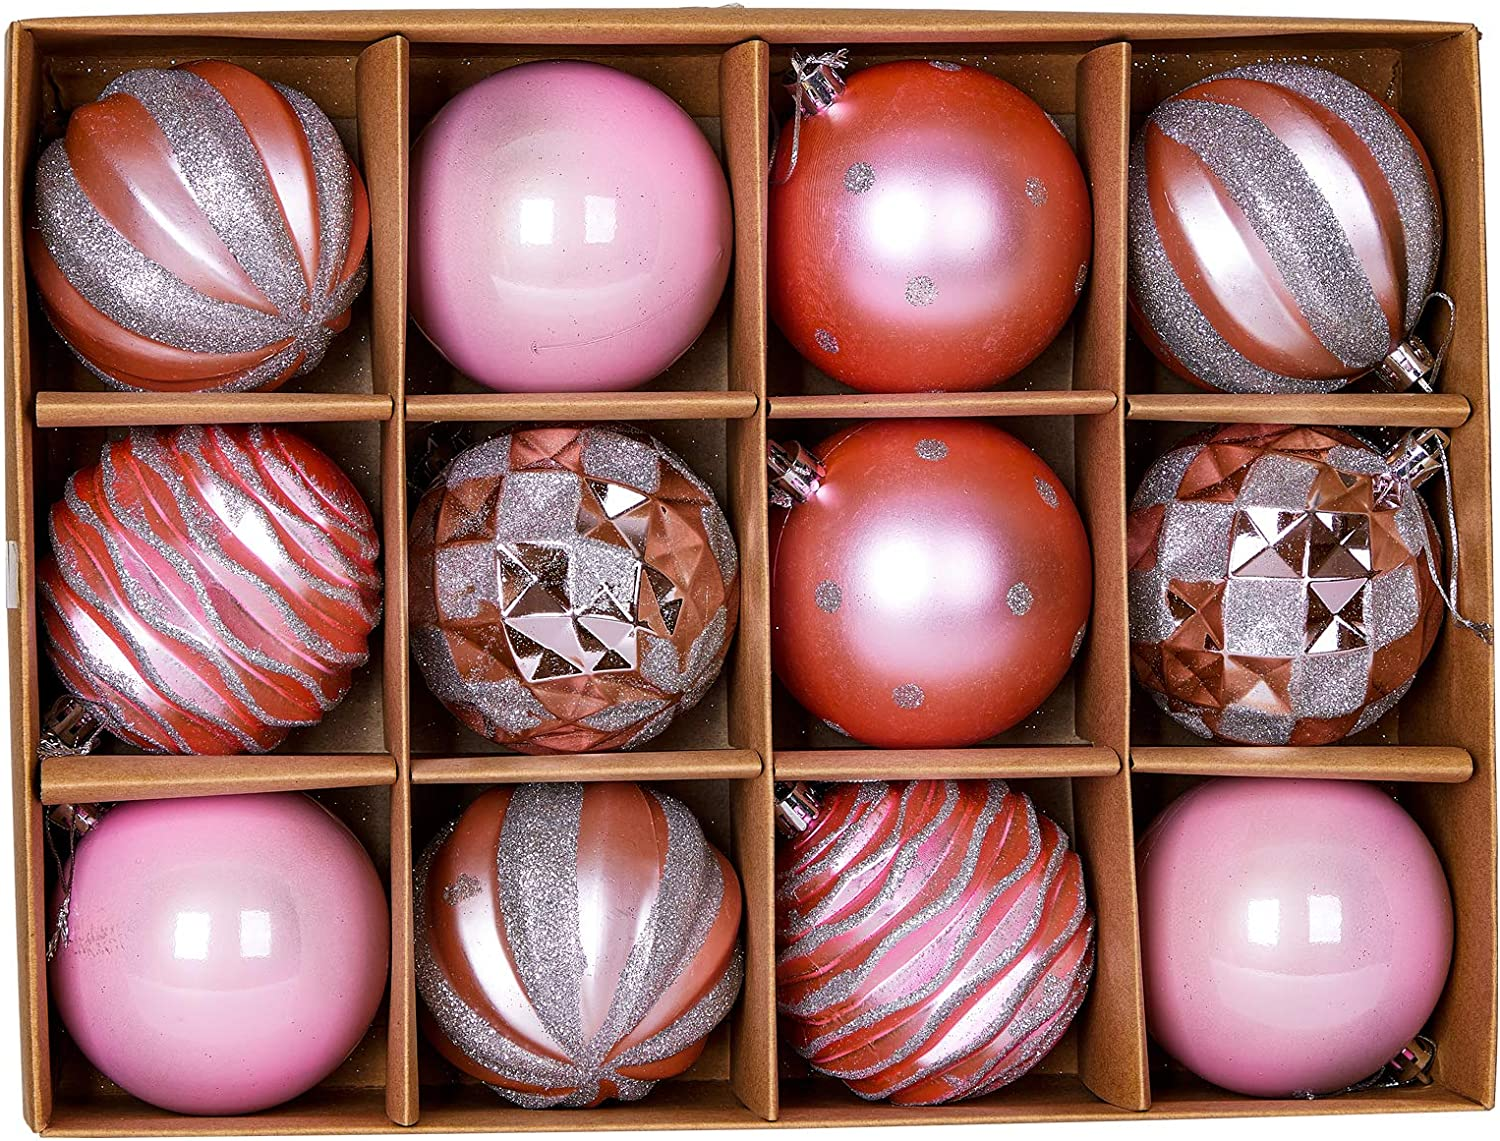 """Jilimeli 12ct 80mm/3.15"""" Christmas Ball Ornaments, Decorative Hanging Baubles, Christmas Tree Decoration, Plastic and Shatterproof, Ideal for Xmas, Holiday, Home and Party Decor, Pink"""